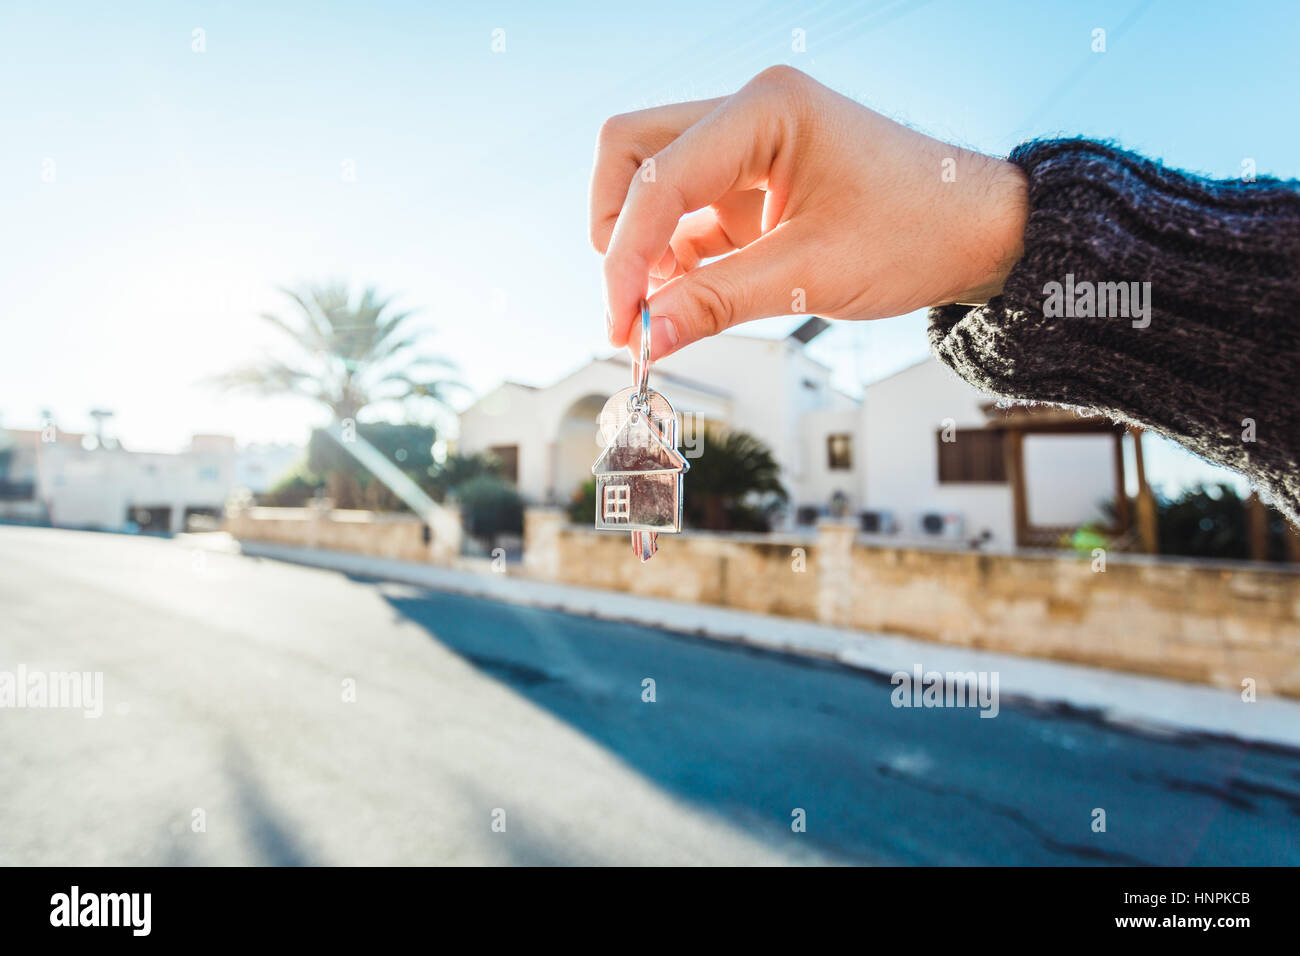 Holding house keys on house shaped keychain closeup in front of a new home - Stock Image